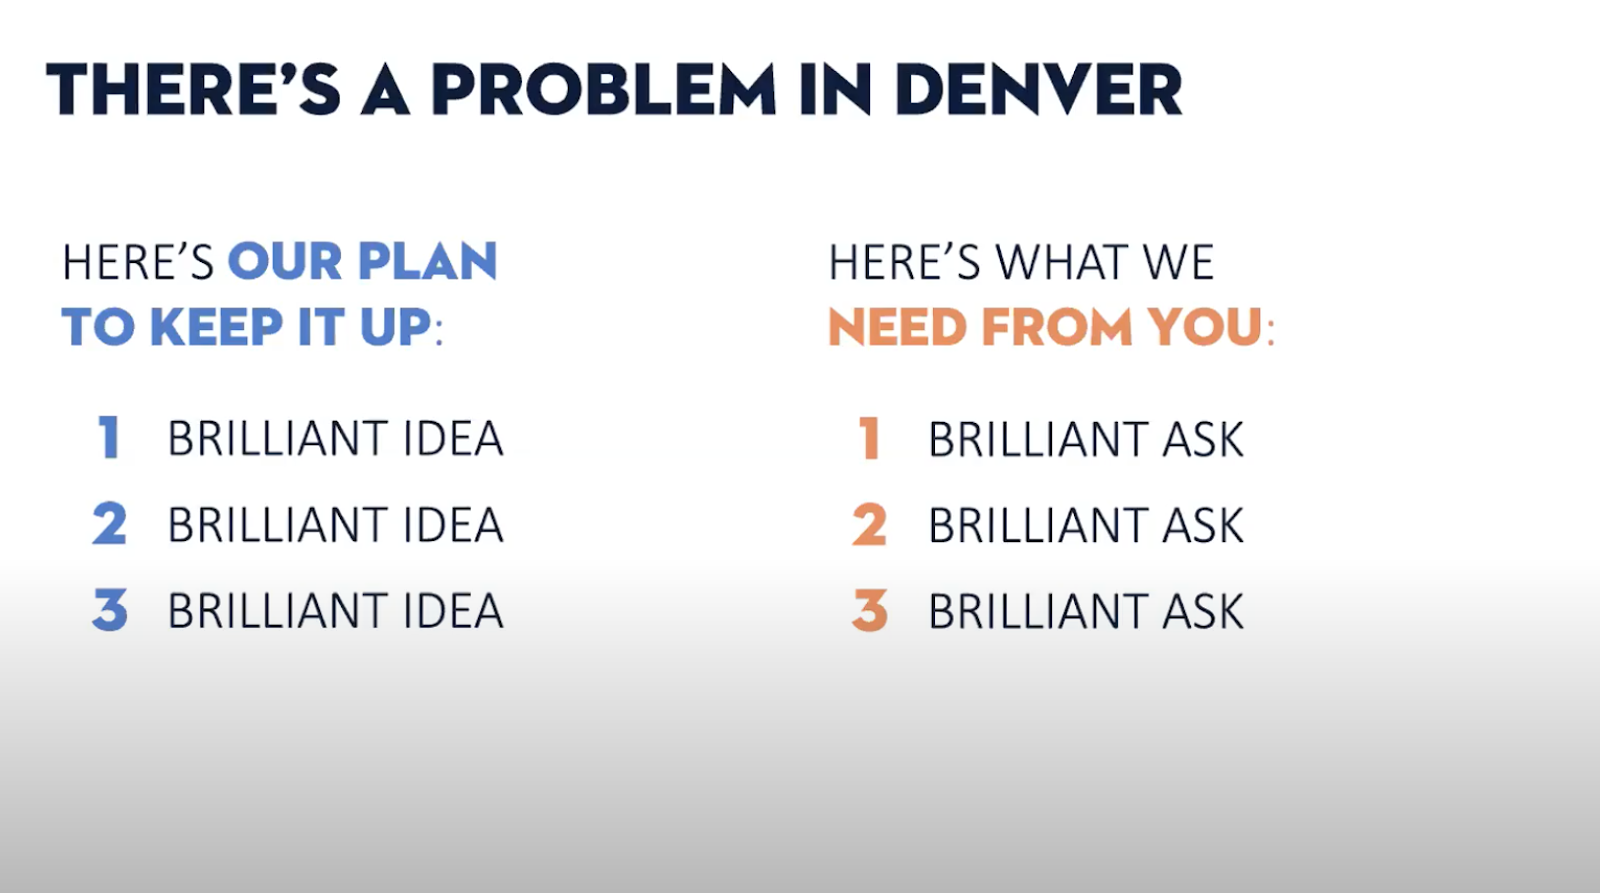 """A summary of why there's a problem in Denver, featuring three points under """"What we plan to do"""" and three points under """"Here's what we need from you"""""""